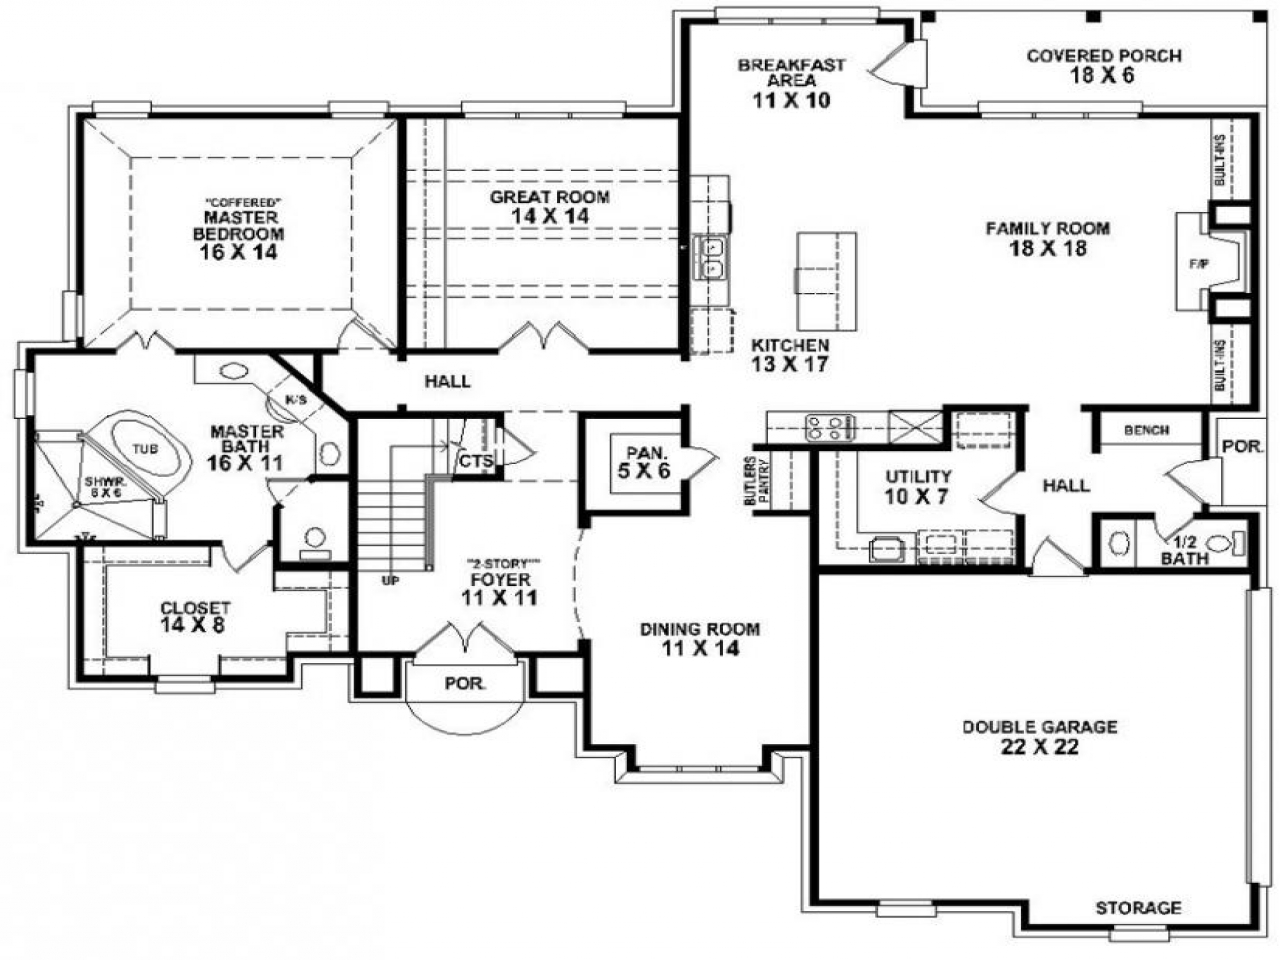 4 Bedroom Floor Plans 4 Bedroom 3 Bath Mobile Home Floor Plans 4 Bedroom 3 Bath